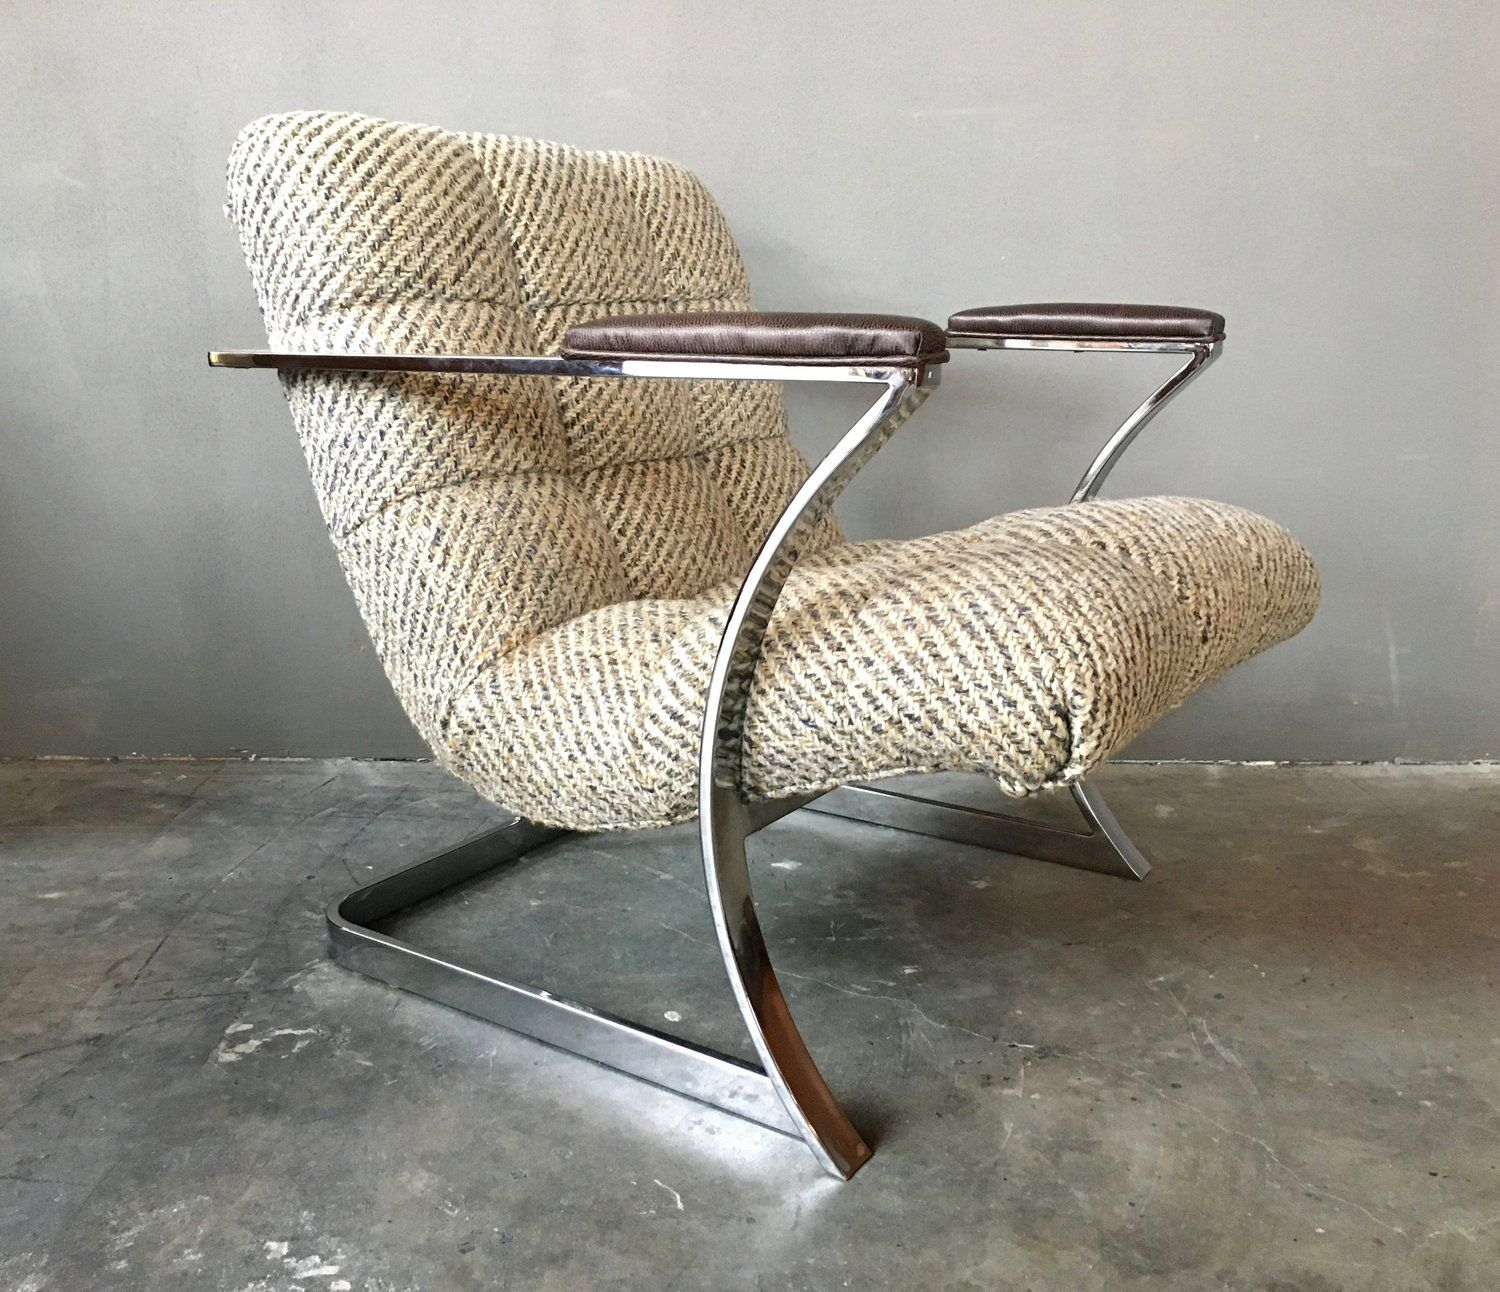 Pin by M Detout on MOBILIER Wishbone chair, Furniture